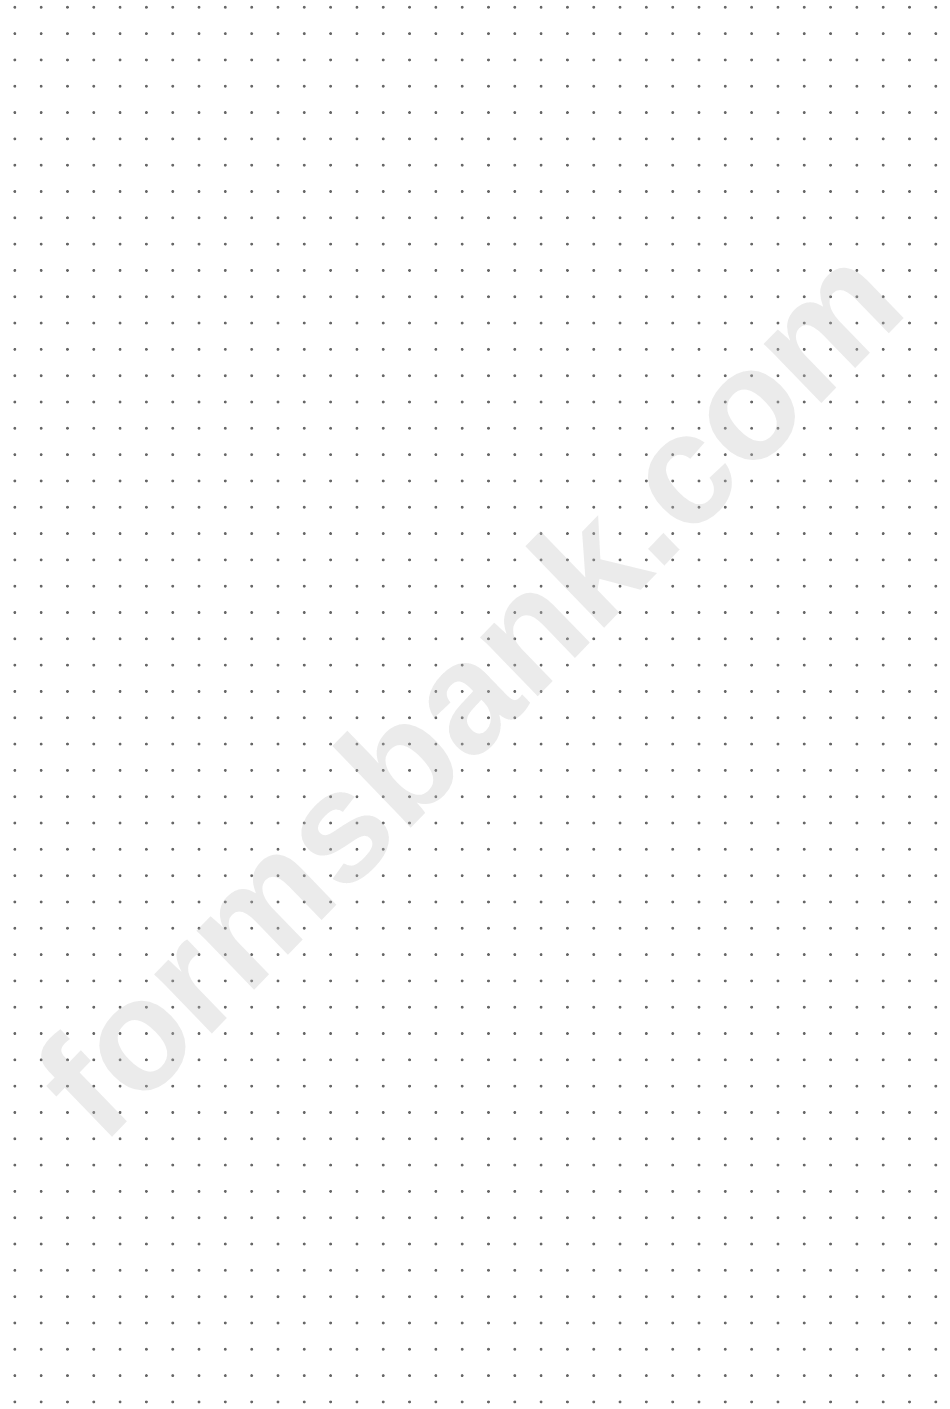 Grey Dotted Paper Template Printable Pdf Download